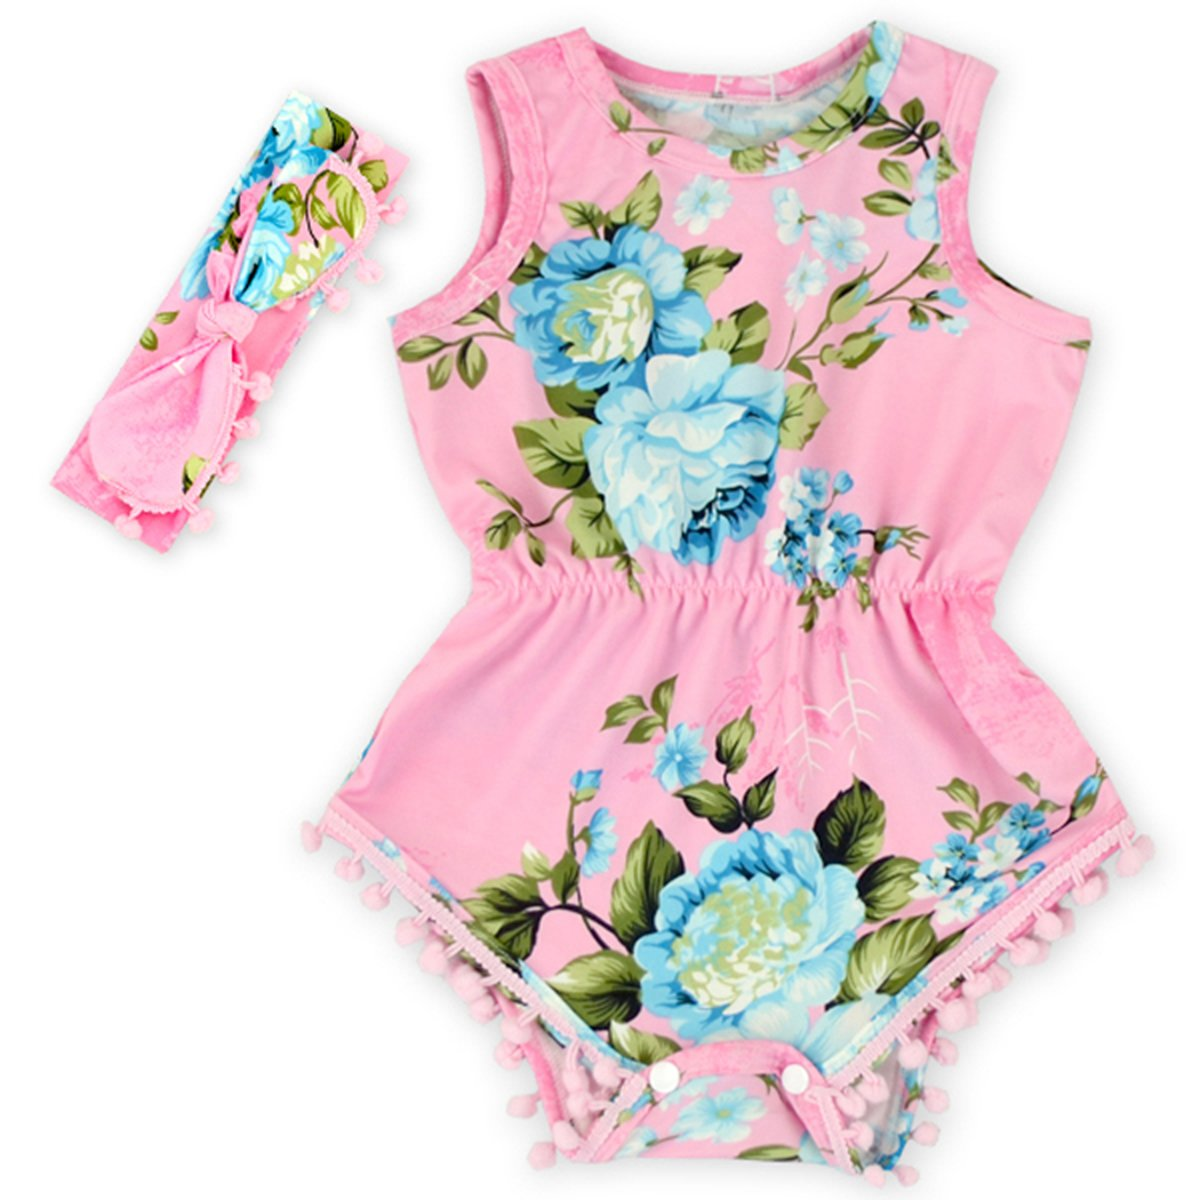 Anbaby Baby Girls Cute Romper Bodysuit Clothes Anbaby43